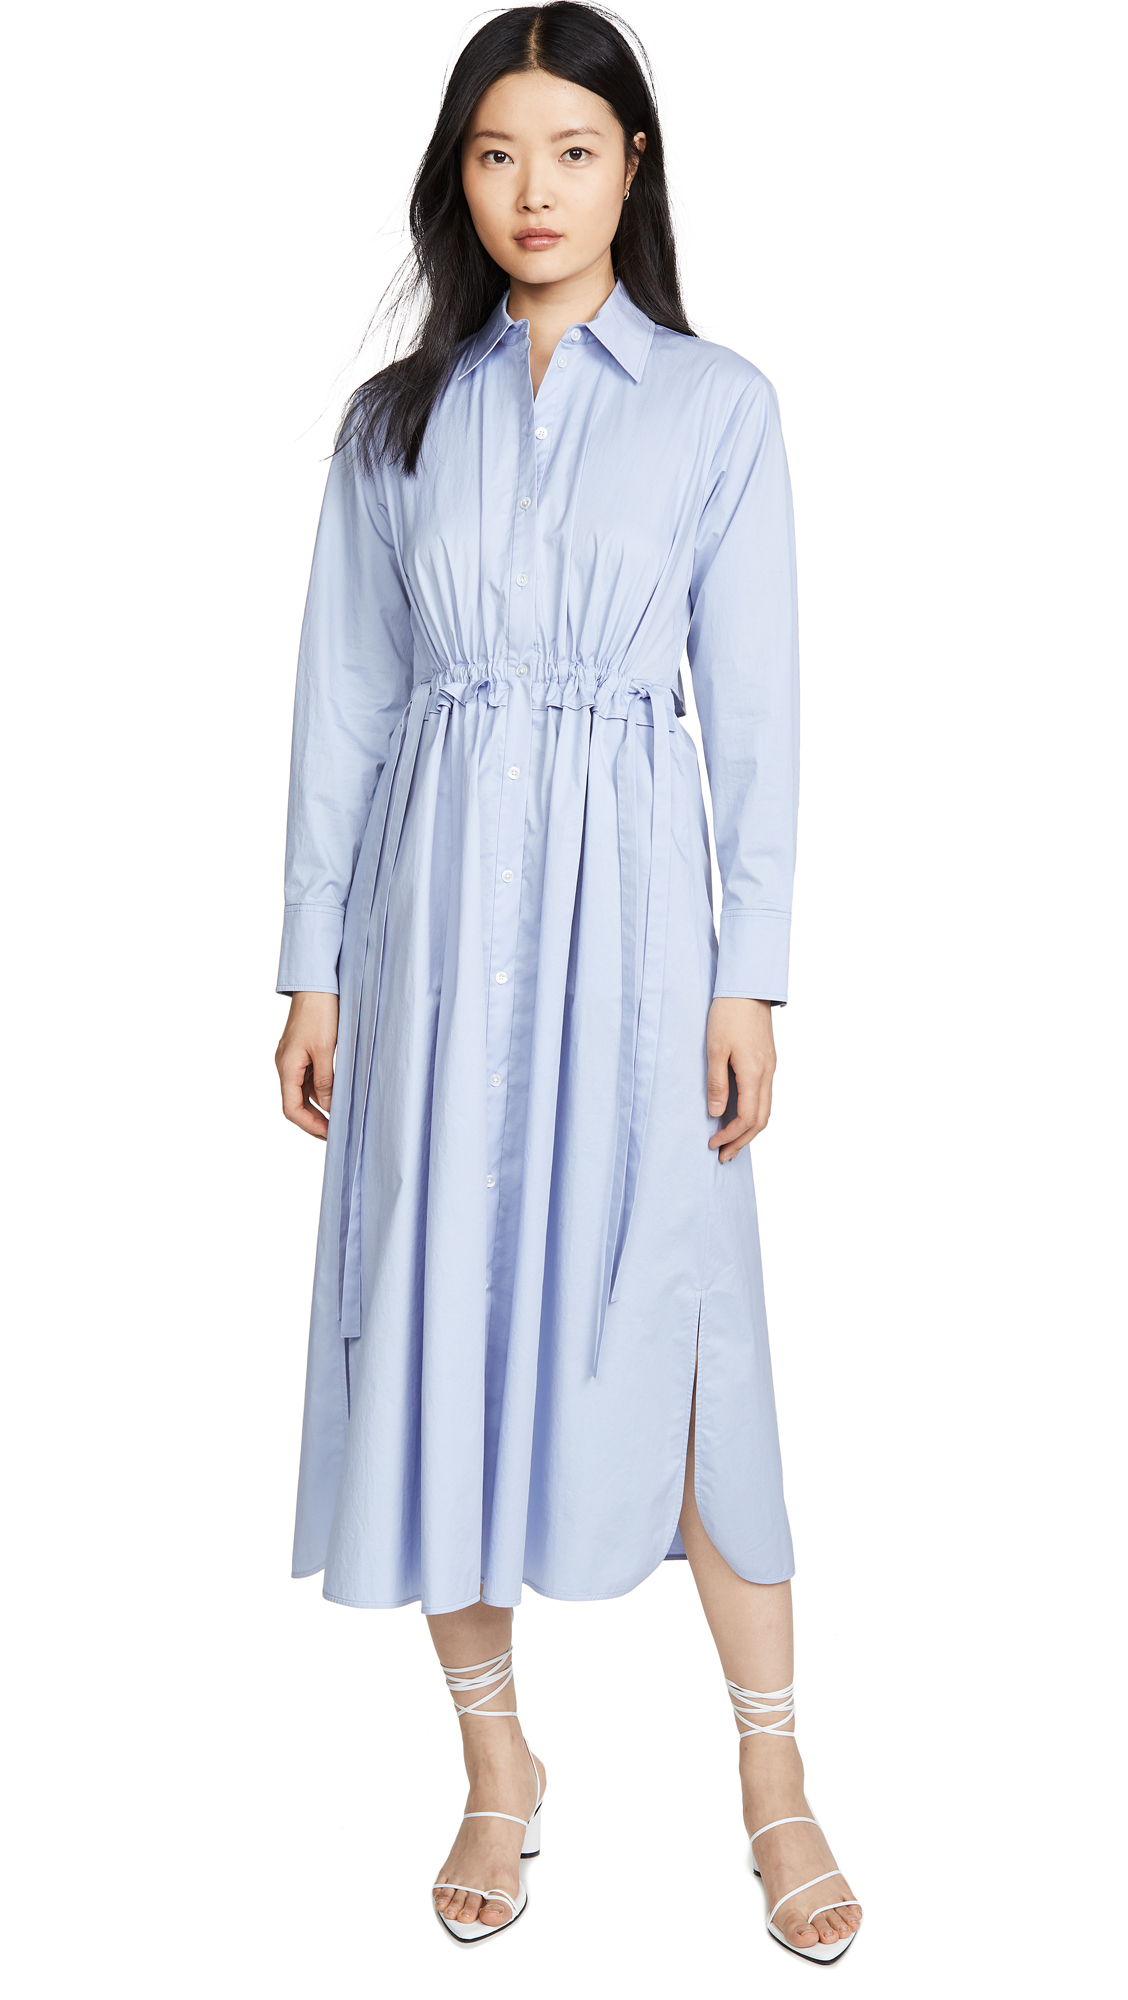 Jason Wu Open Back Poplin Shirt Dress - 30% Off Sale